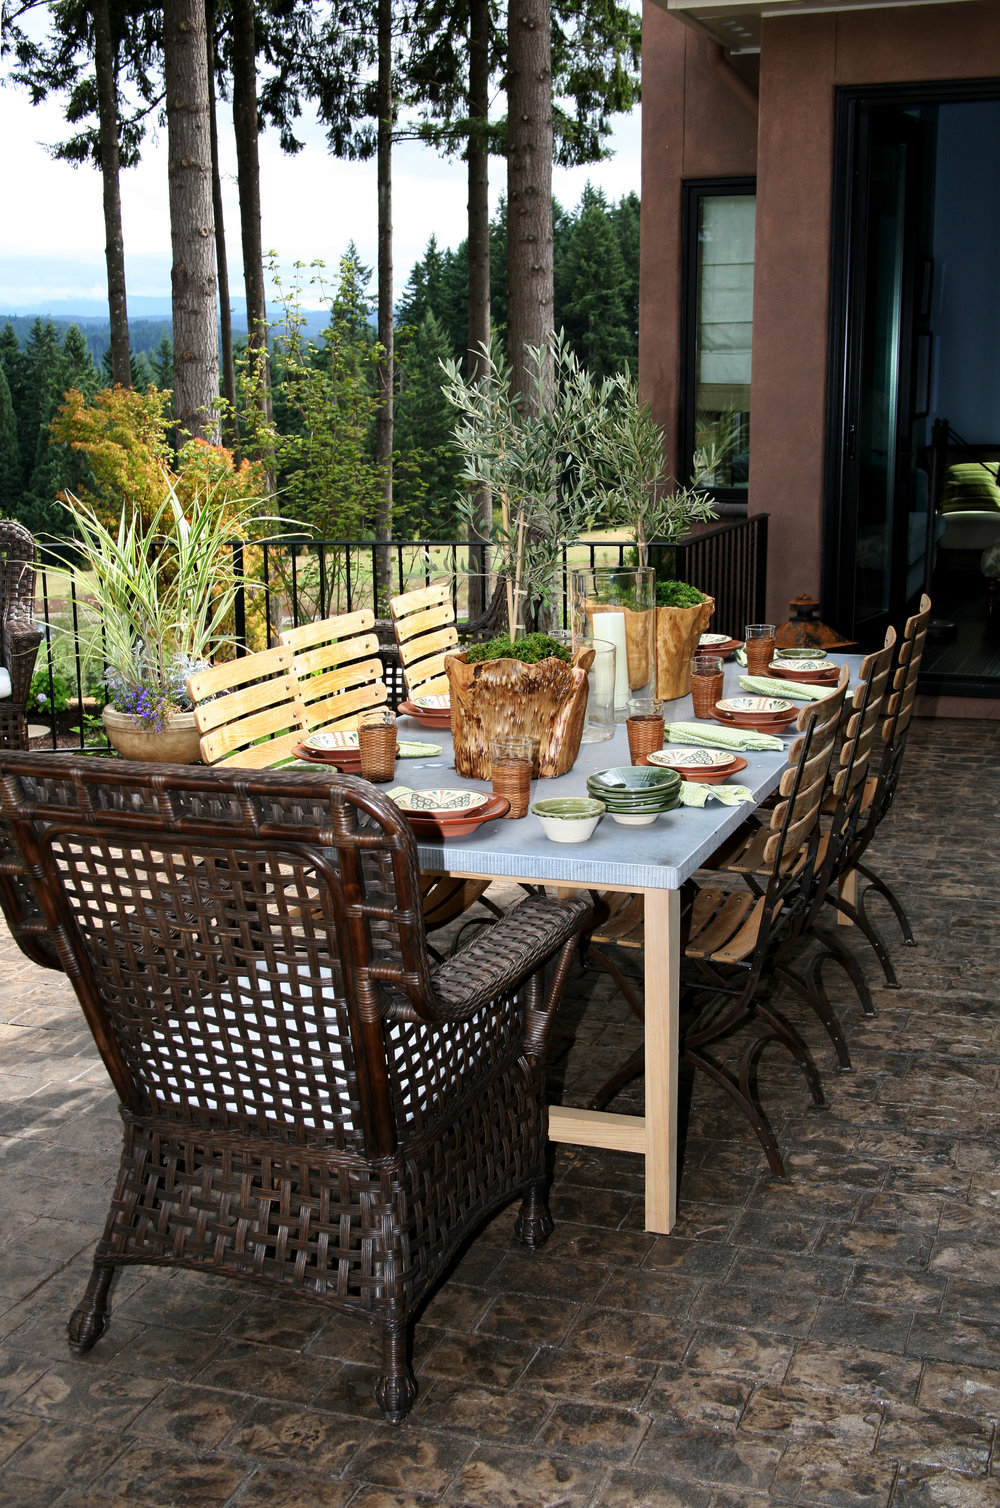 5 Landscaping Tips for Creating the Ultimate Al Fresco Outdoor Dining Experience in Silver Spring, PA